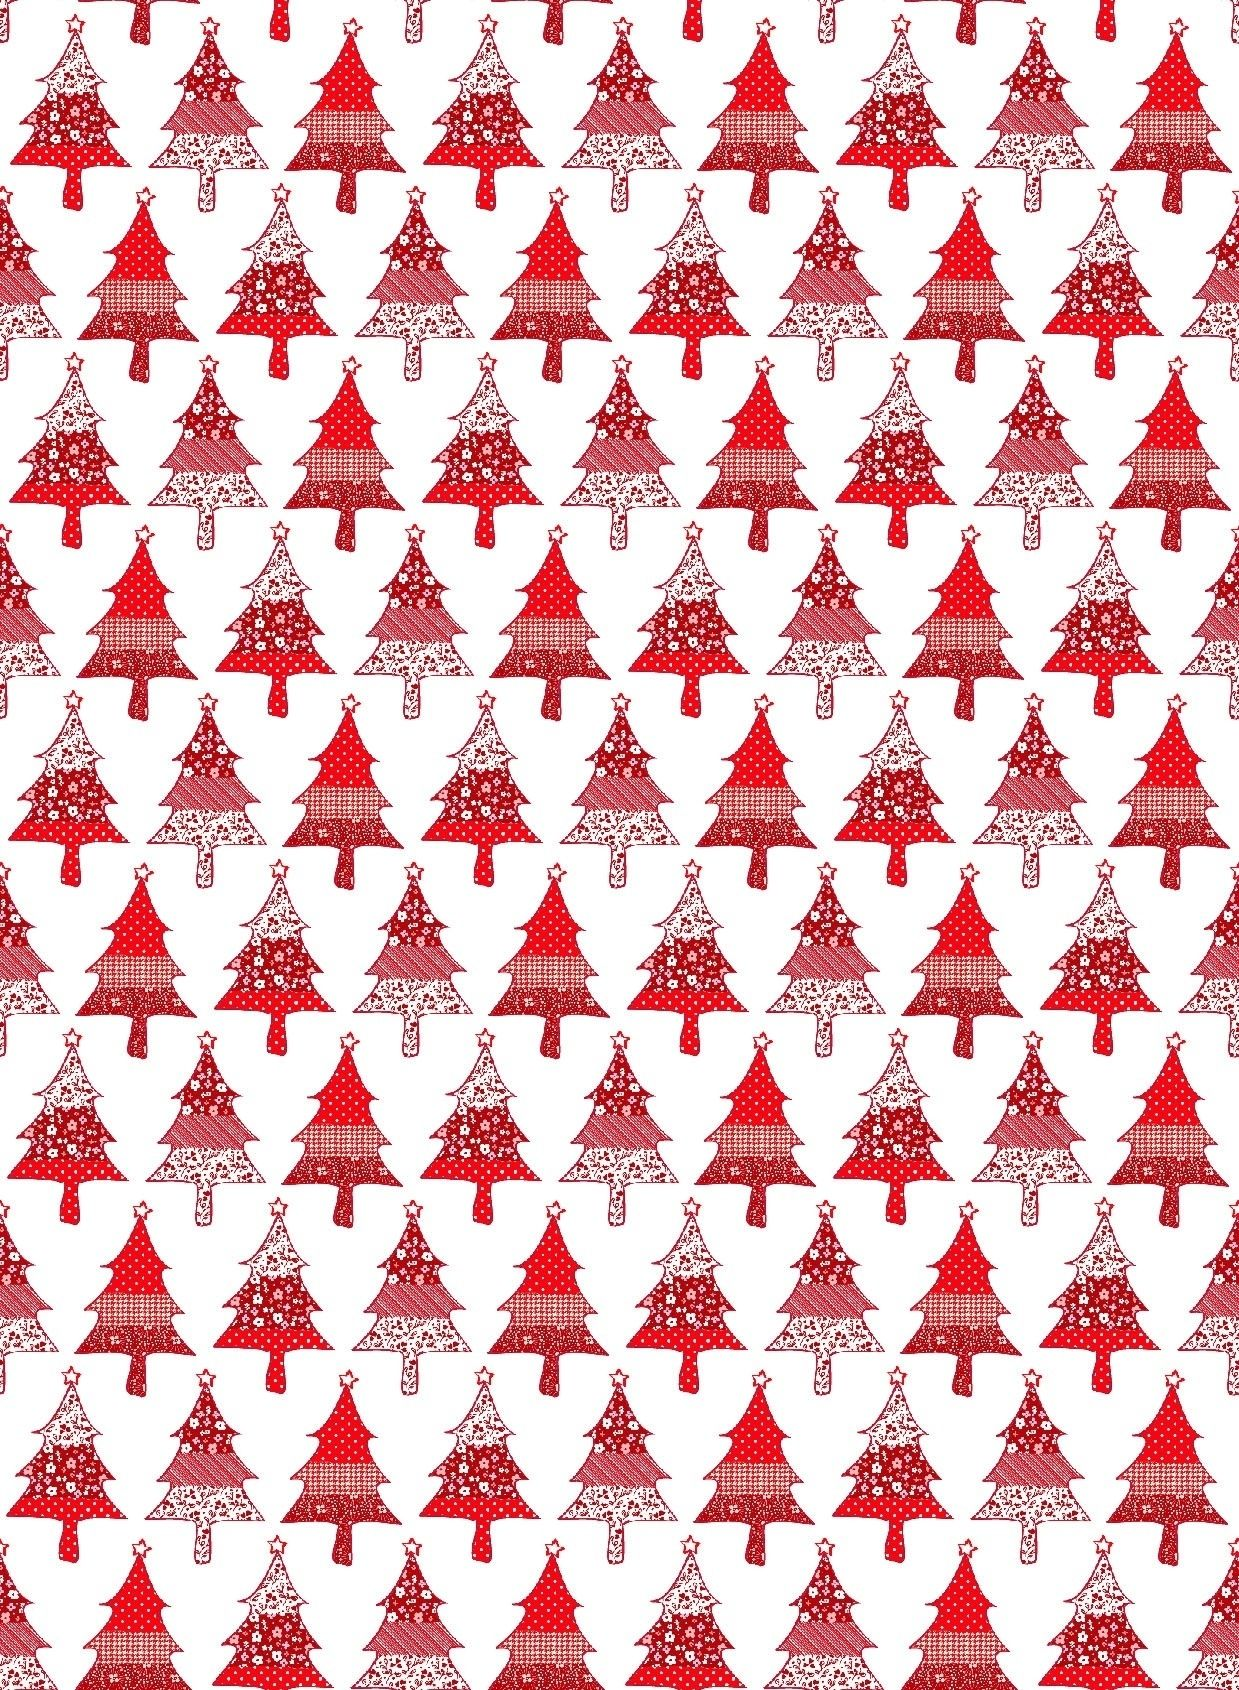 Christmas Gift Wrap Design.Pin On Cool Crafts